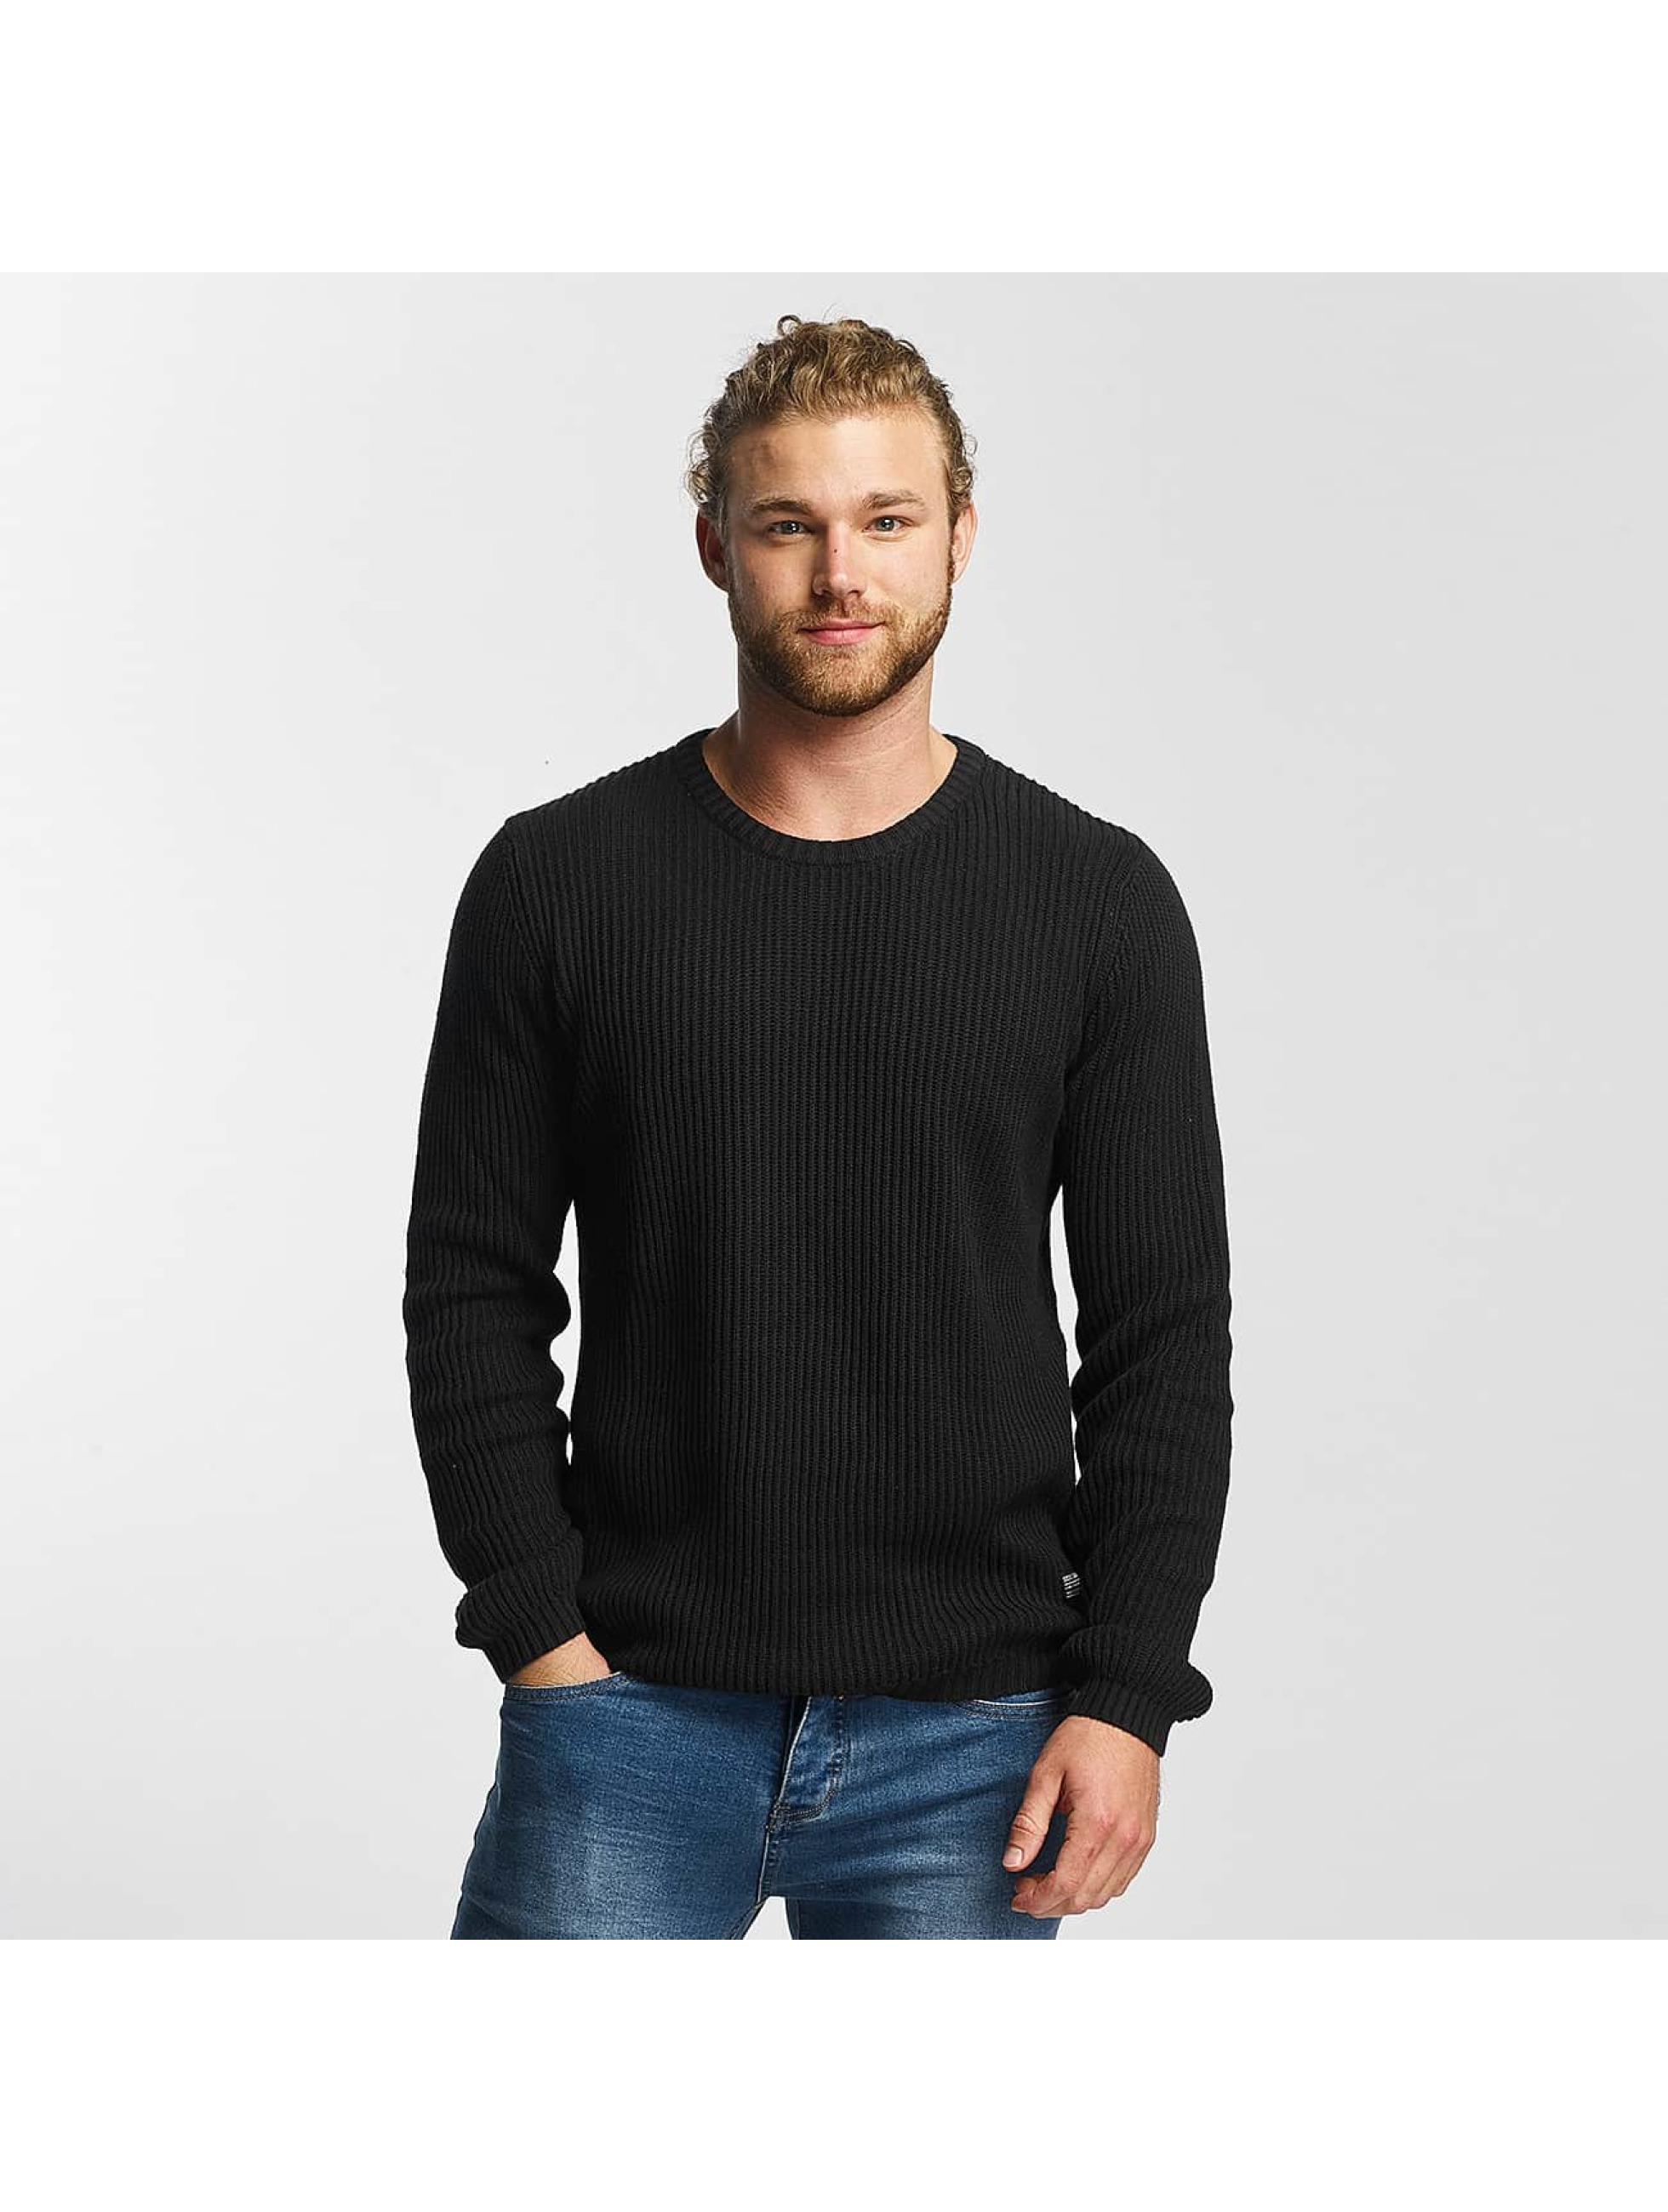 SHINE Original Männer Pullover O-Neck Knit in schwarz